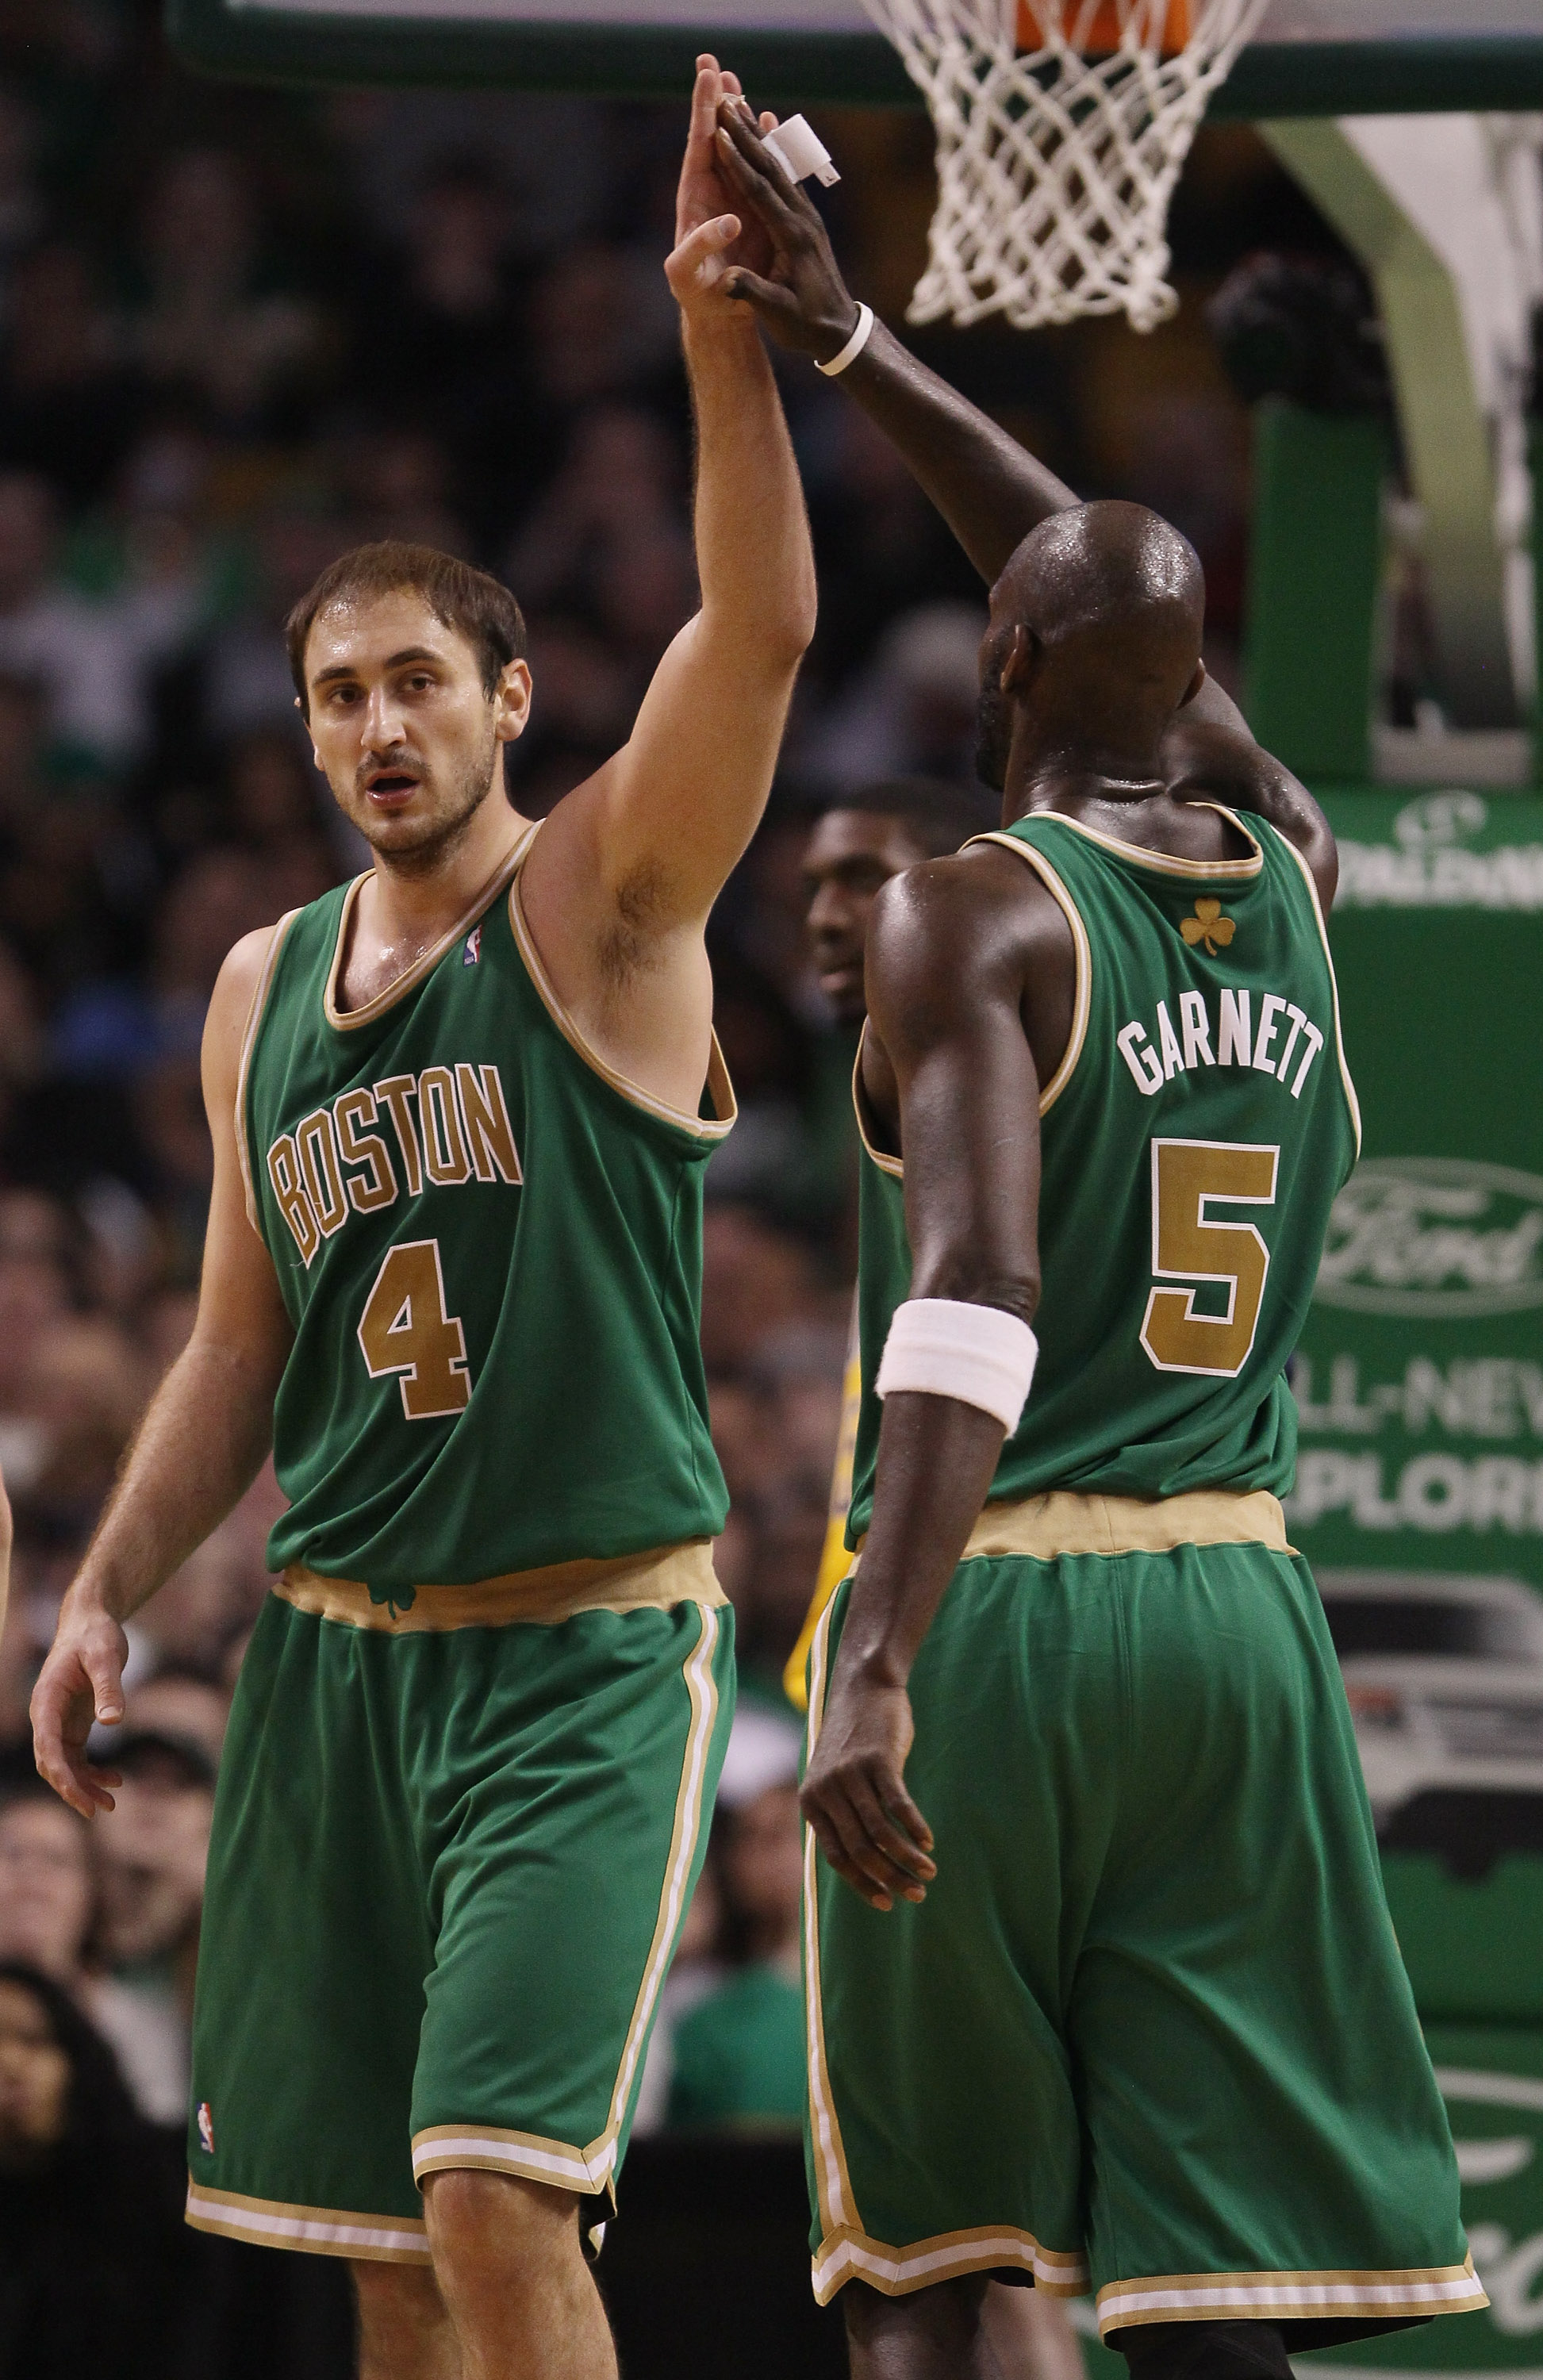 BOSTON, MA - MARCH 16:  Nenad Krstic #4 of the Boston Celtics is congratulated by teammate Kevin Garnett #5 after Krstic drew the foul in the second half against the Indiana Pacers on March 16, 2011 at the TD Garden in Boston, Massachusetts. The Celtics d